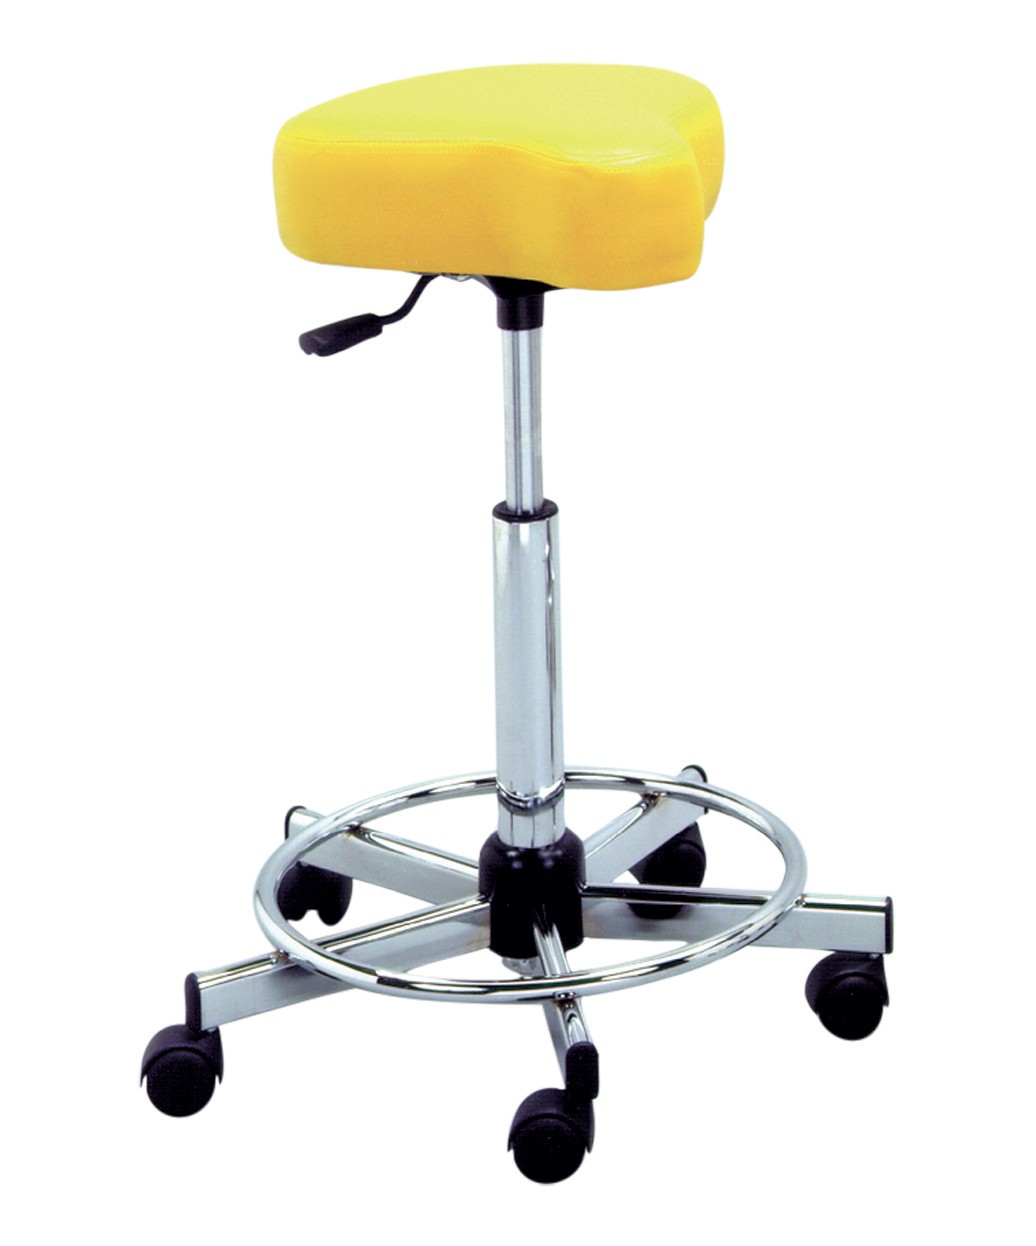 Pibbs 721 Bike Seat Stool